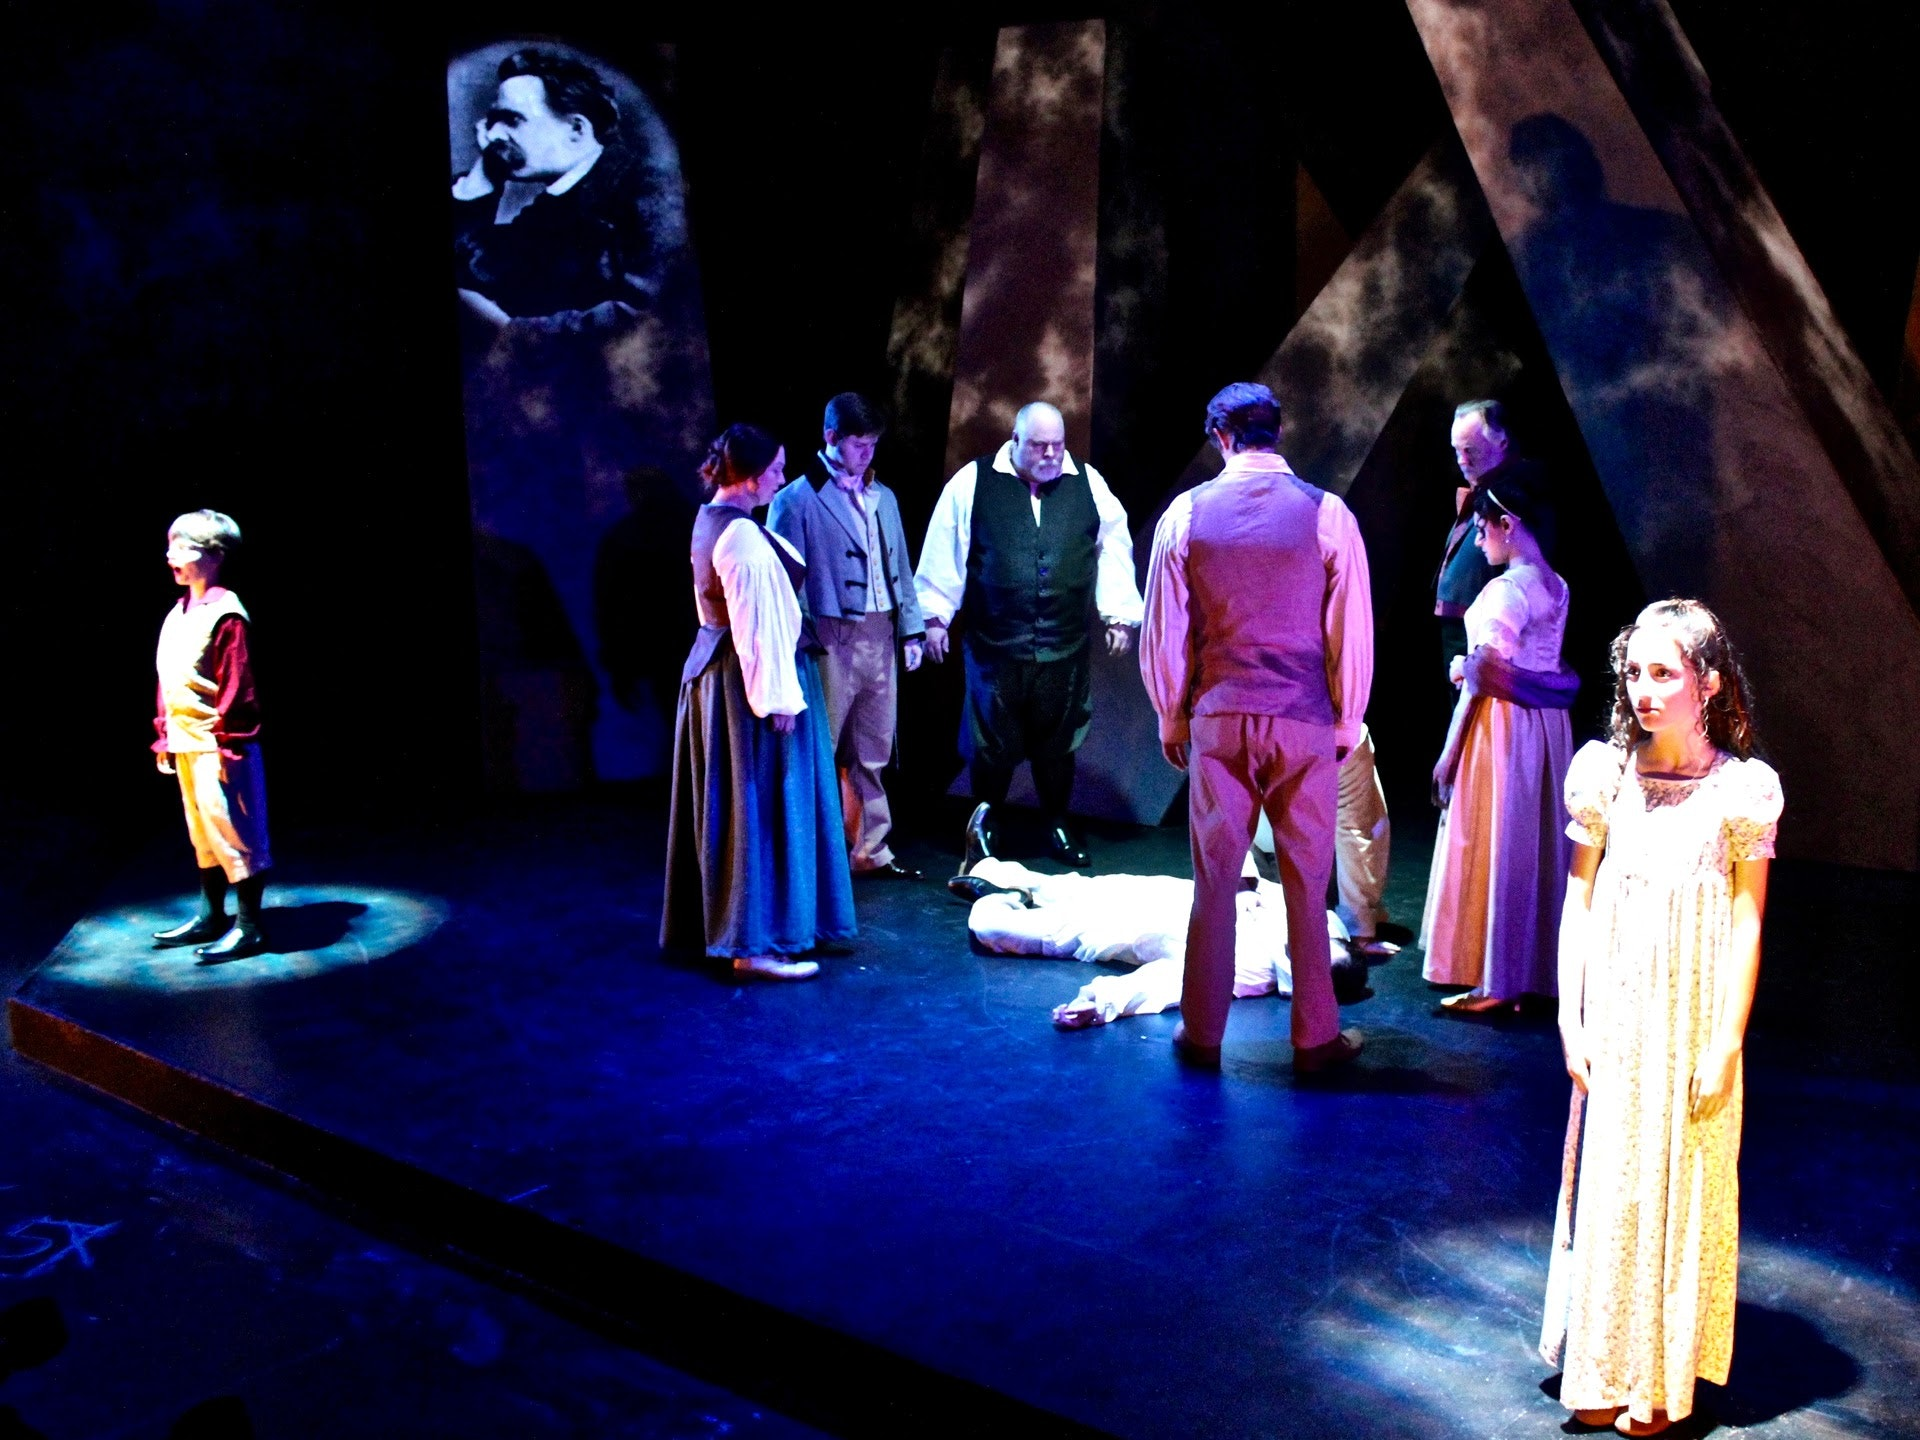 <p>City Lights Theater experiments with new immersive technologies in theater. Photo courtesy of City Lights Theater.</p>